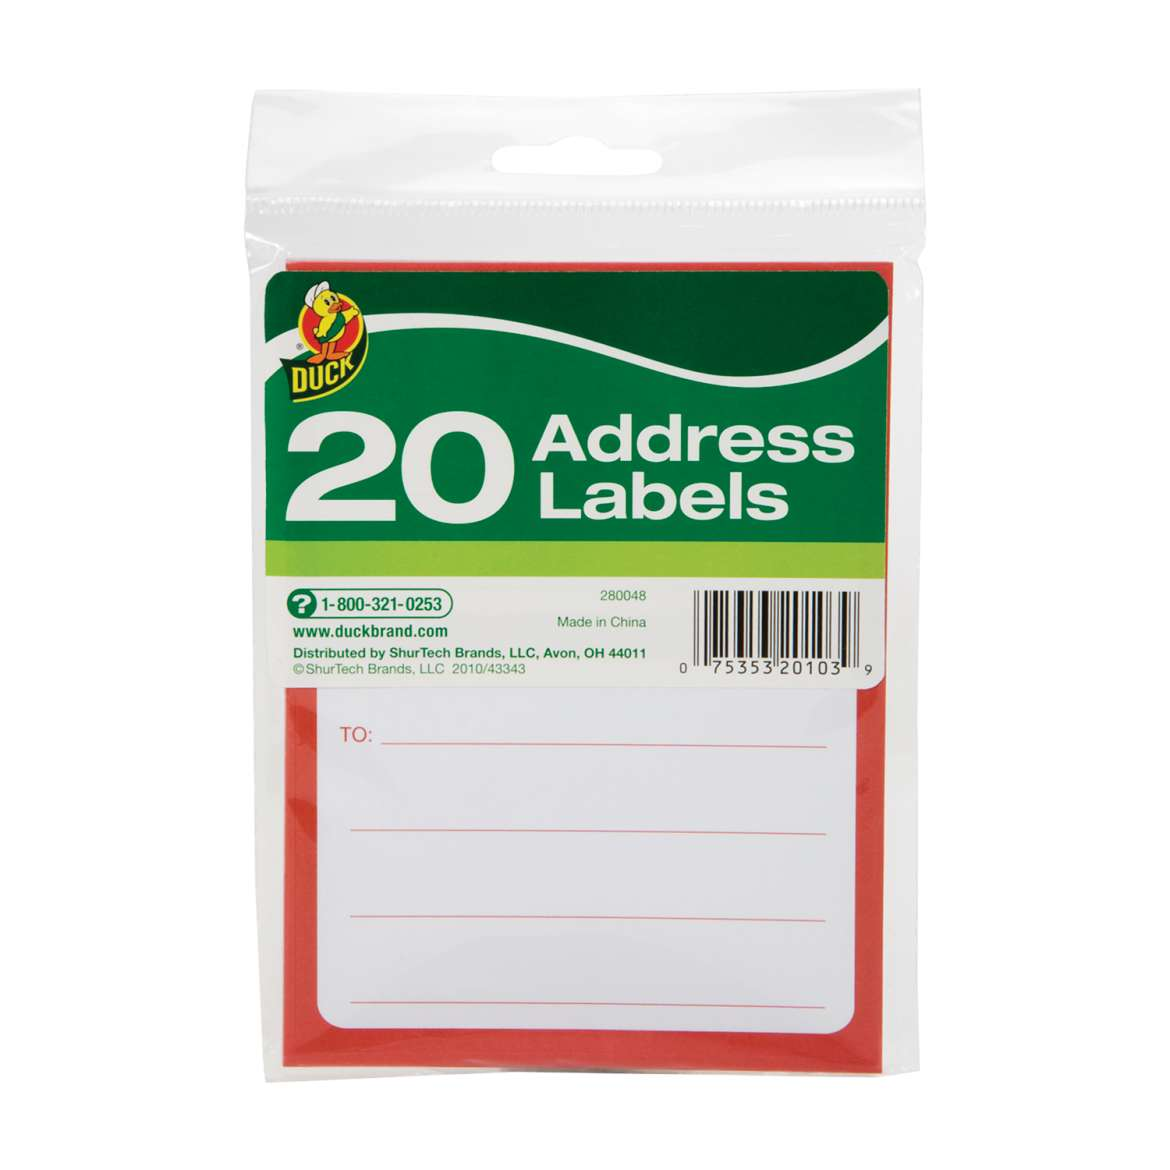 Duck® Brand Address Labels, 20 pk, 3.5 in. x 4.5 in. Image